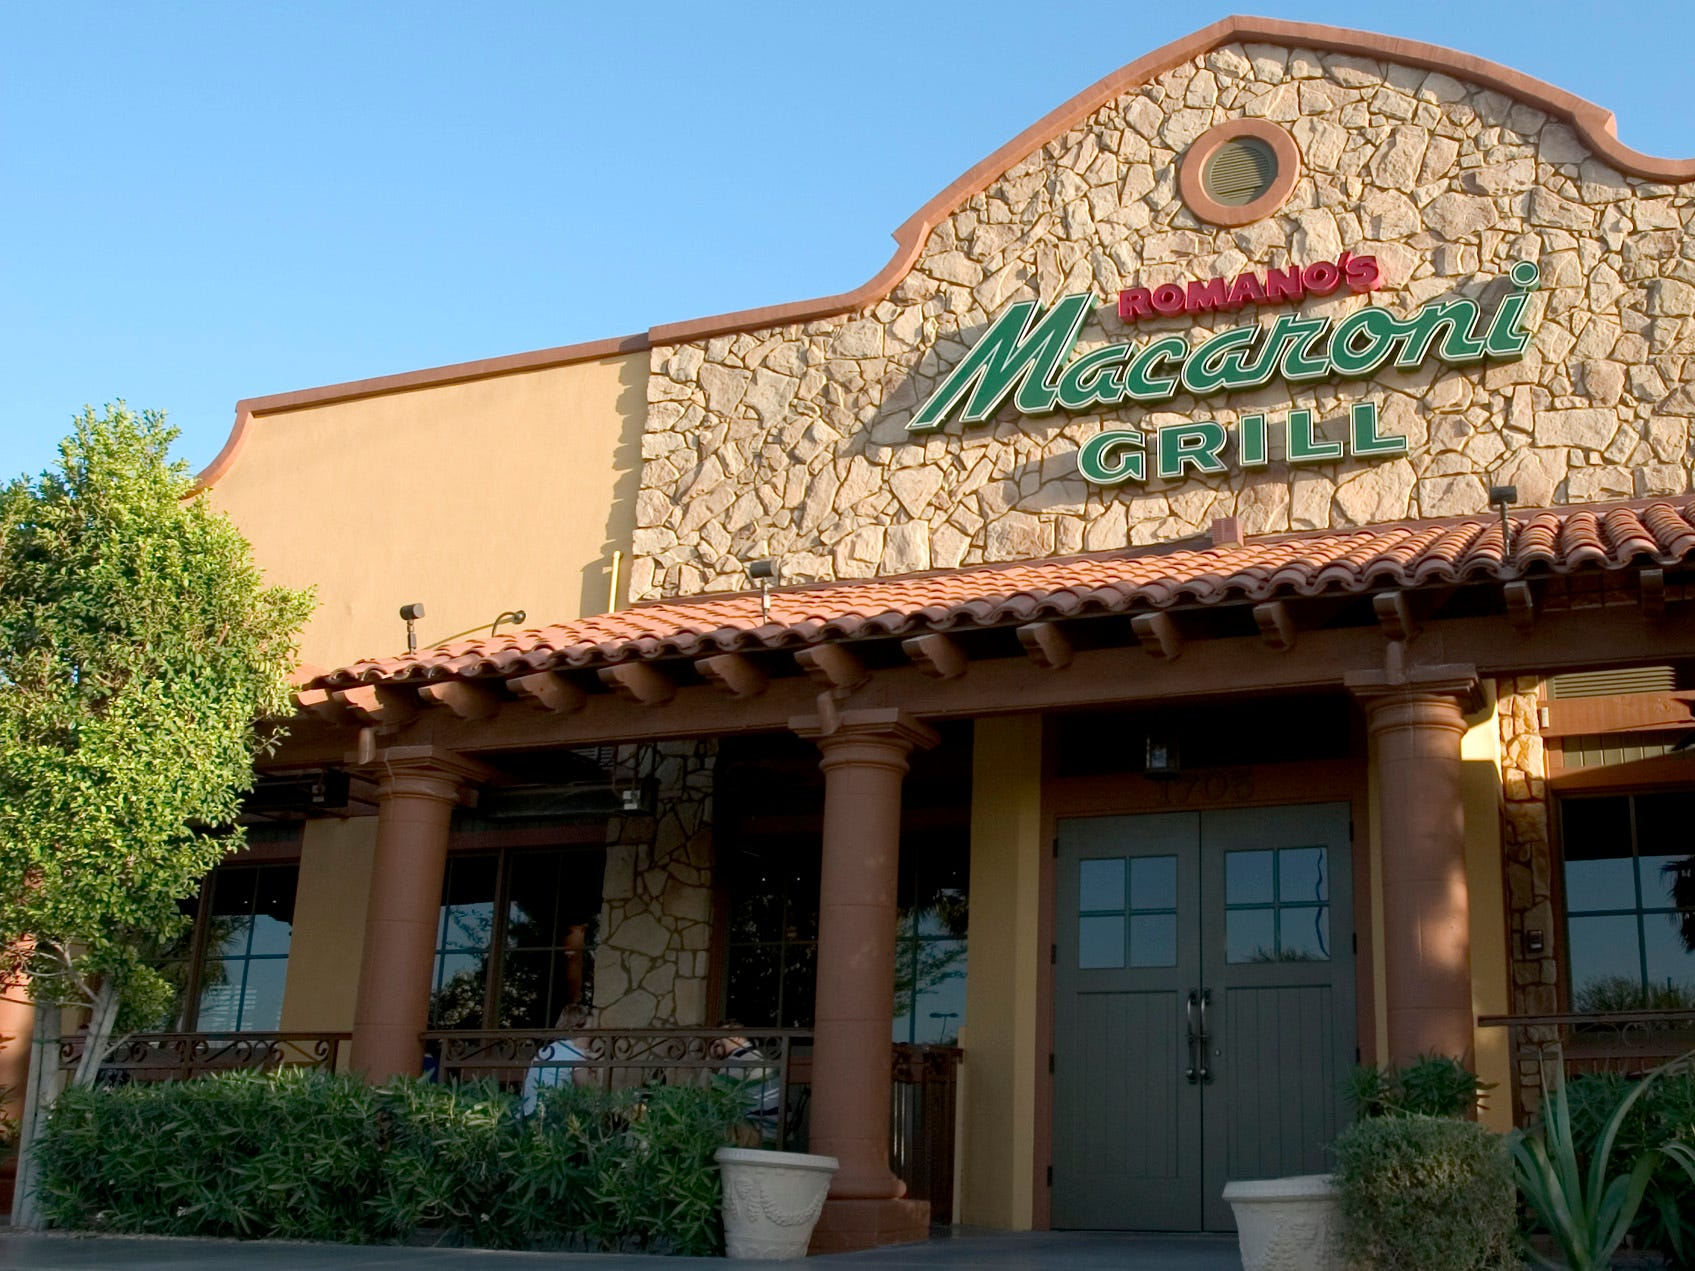 Romano's Macaroni Grill | Nov. 11, get a free Mom's Ricotta Meatballs + Spaghetti entree. | Details: 1828 N. Litchfield Road, Goodyear. 623-547-0299. Also, 21001 N. Tatum Blvd., Phoenix. 480-538-8755. Other locations at macaronigrill.com.